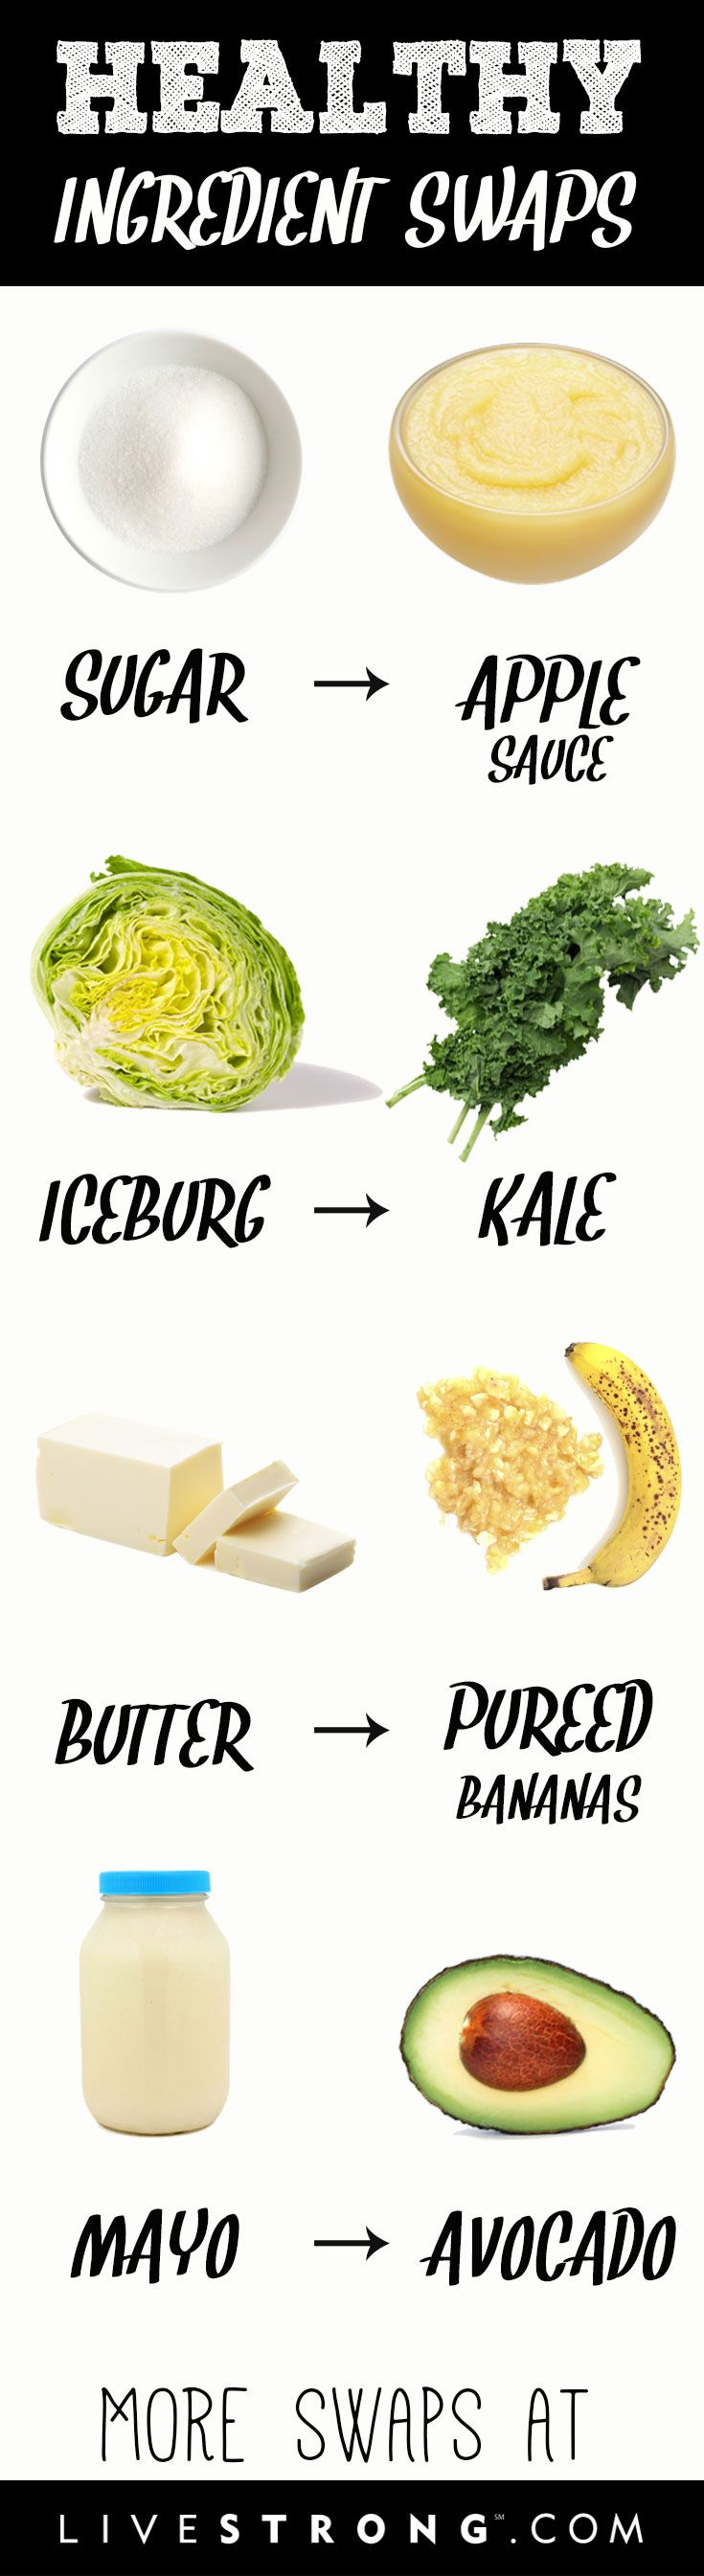 9 super ingredient swaps to boost nutrition while slashing calories, sugar and saturated fat!